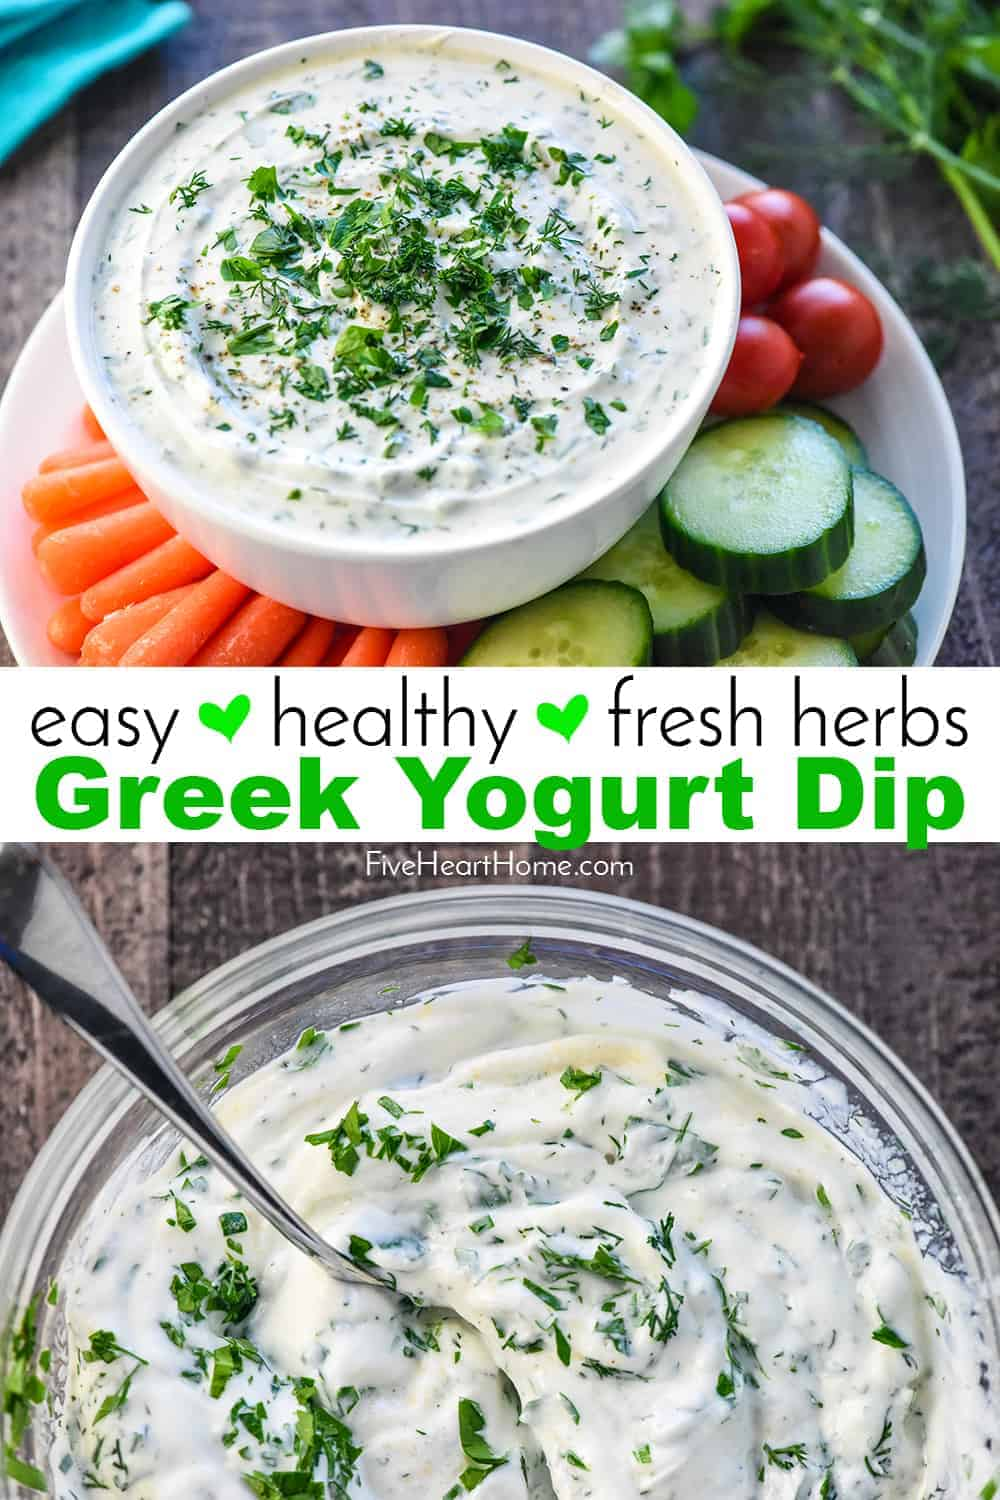 Greek Yogurt Dip in a bowl with raw veggies, collage with text.